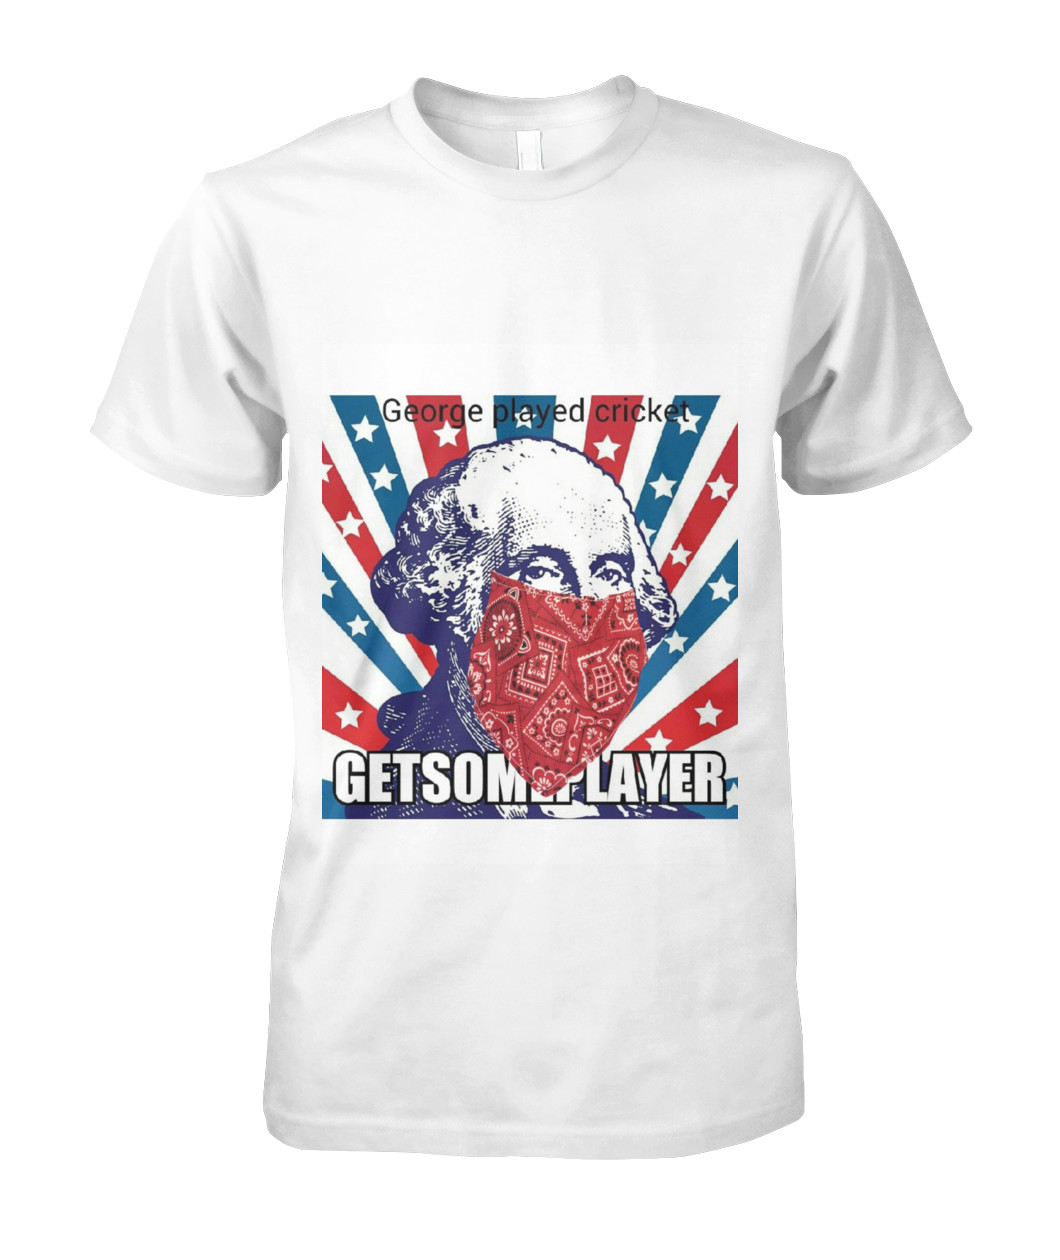 "Buy GETSOMEPLAYER ""Rebel"" George Played Cricket TShirt Here"